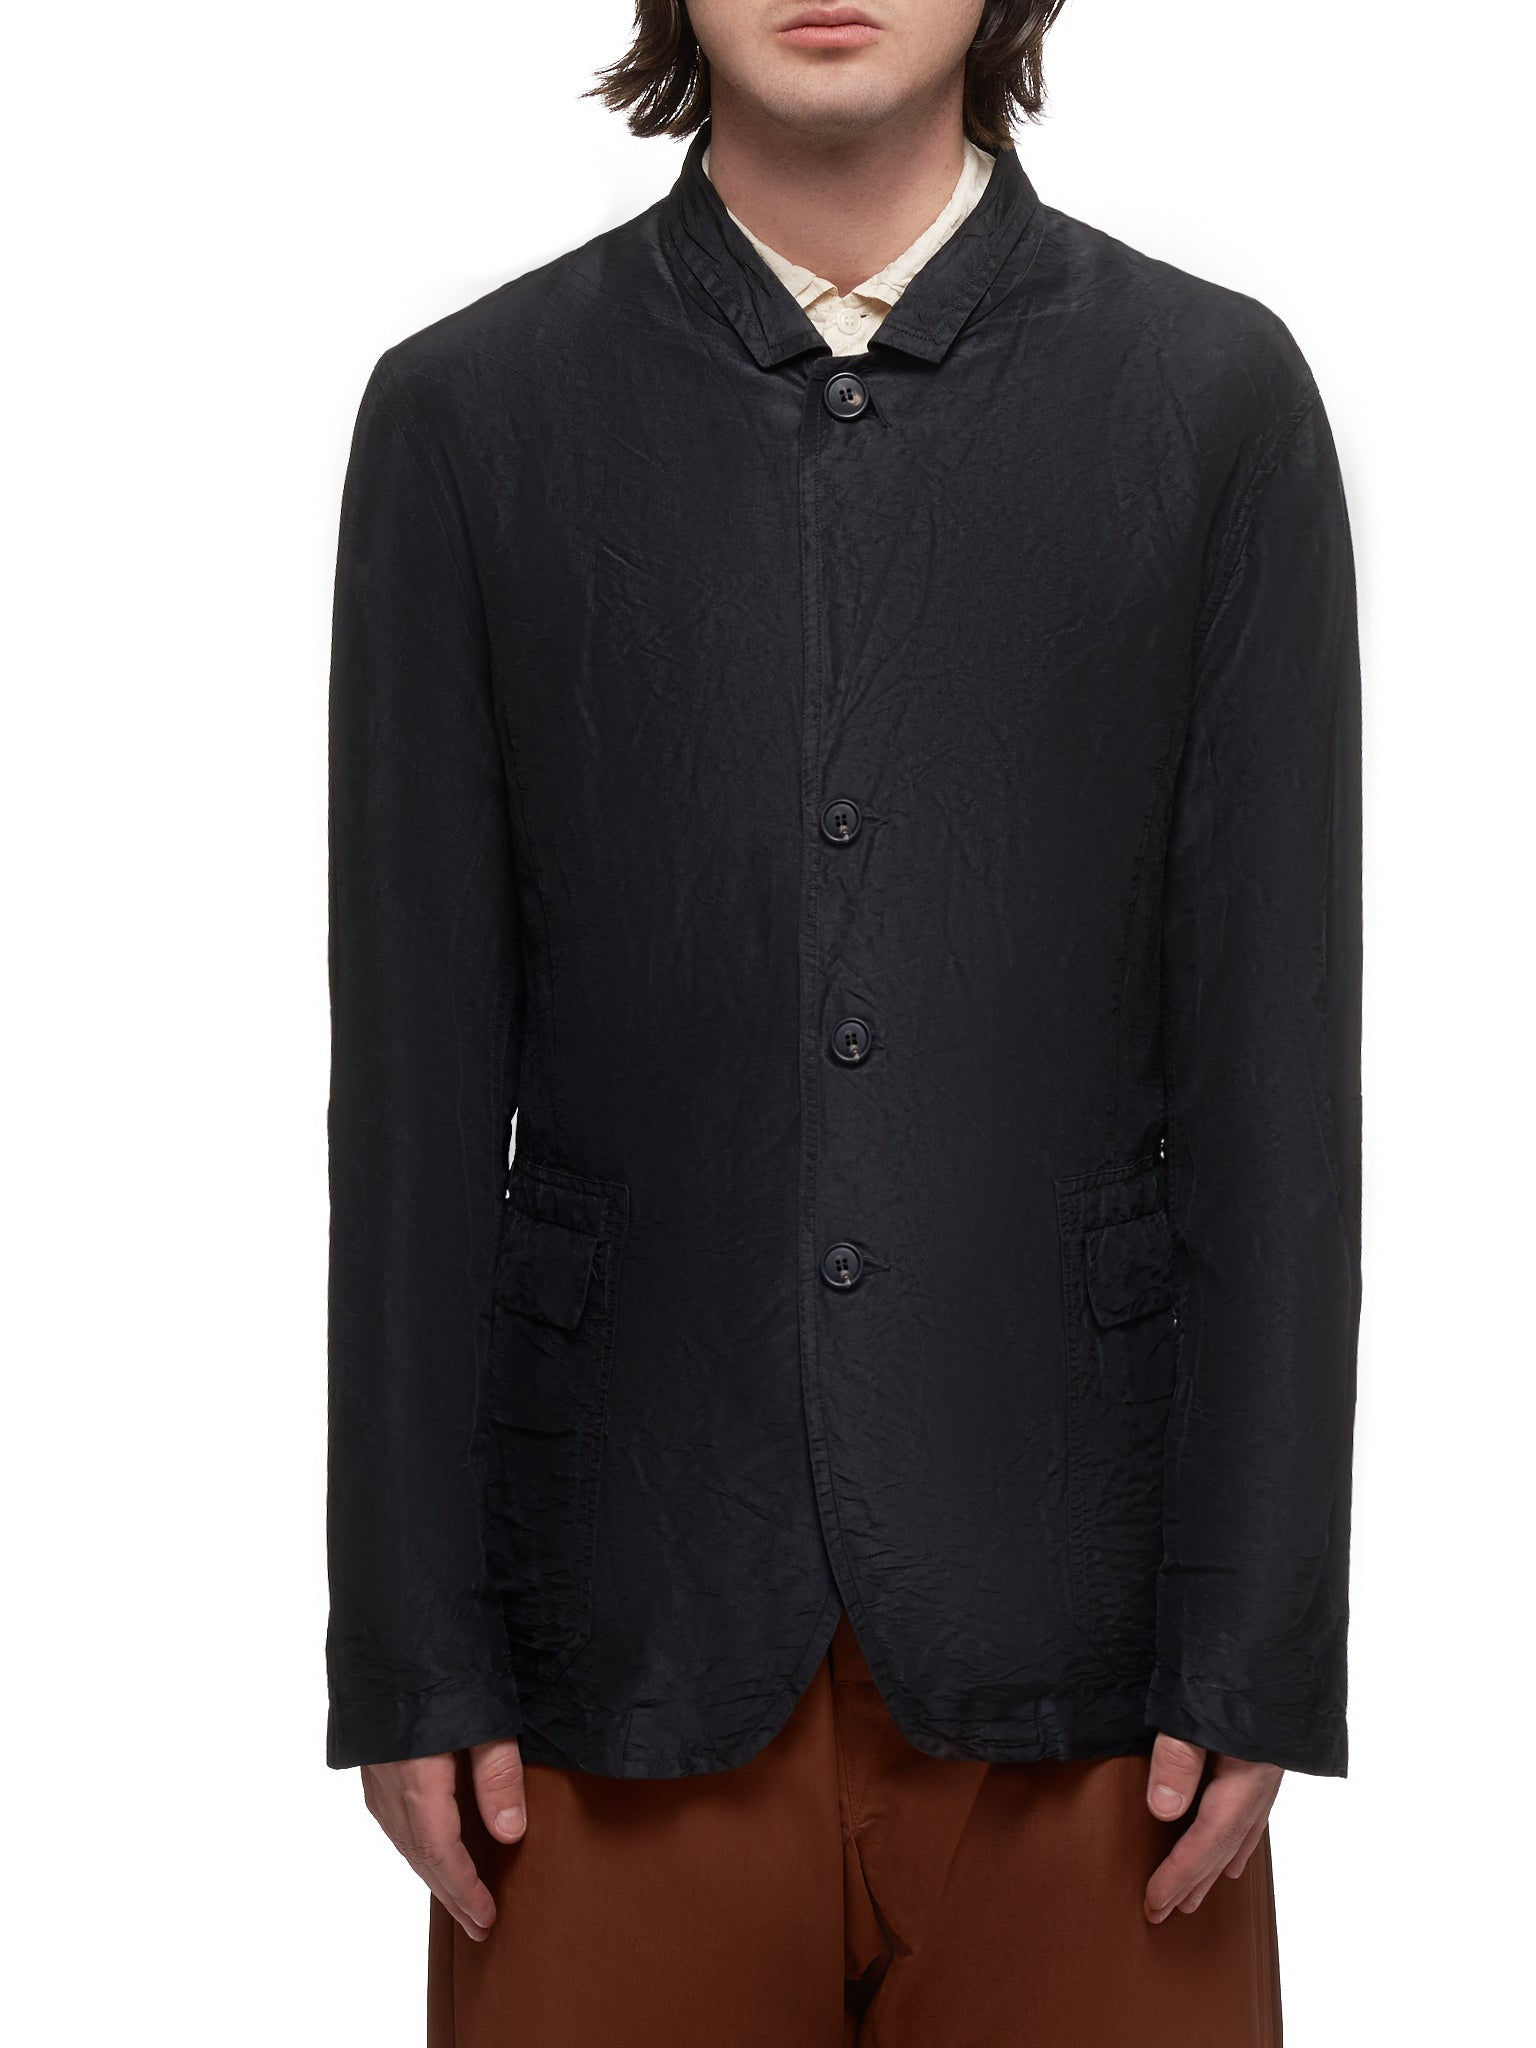 Blazer Shirt (HV220-BLACK)